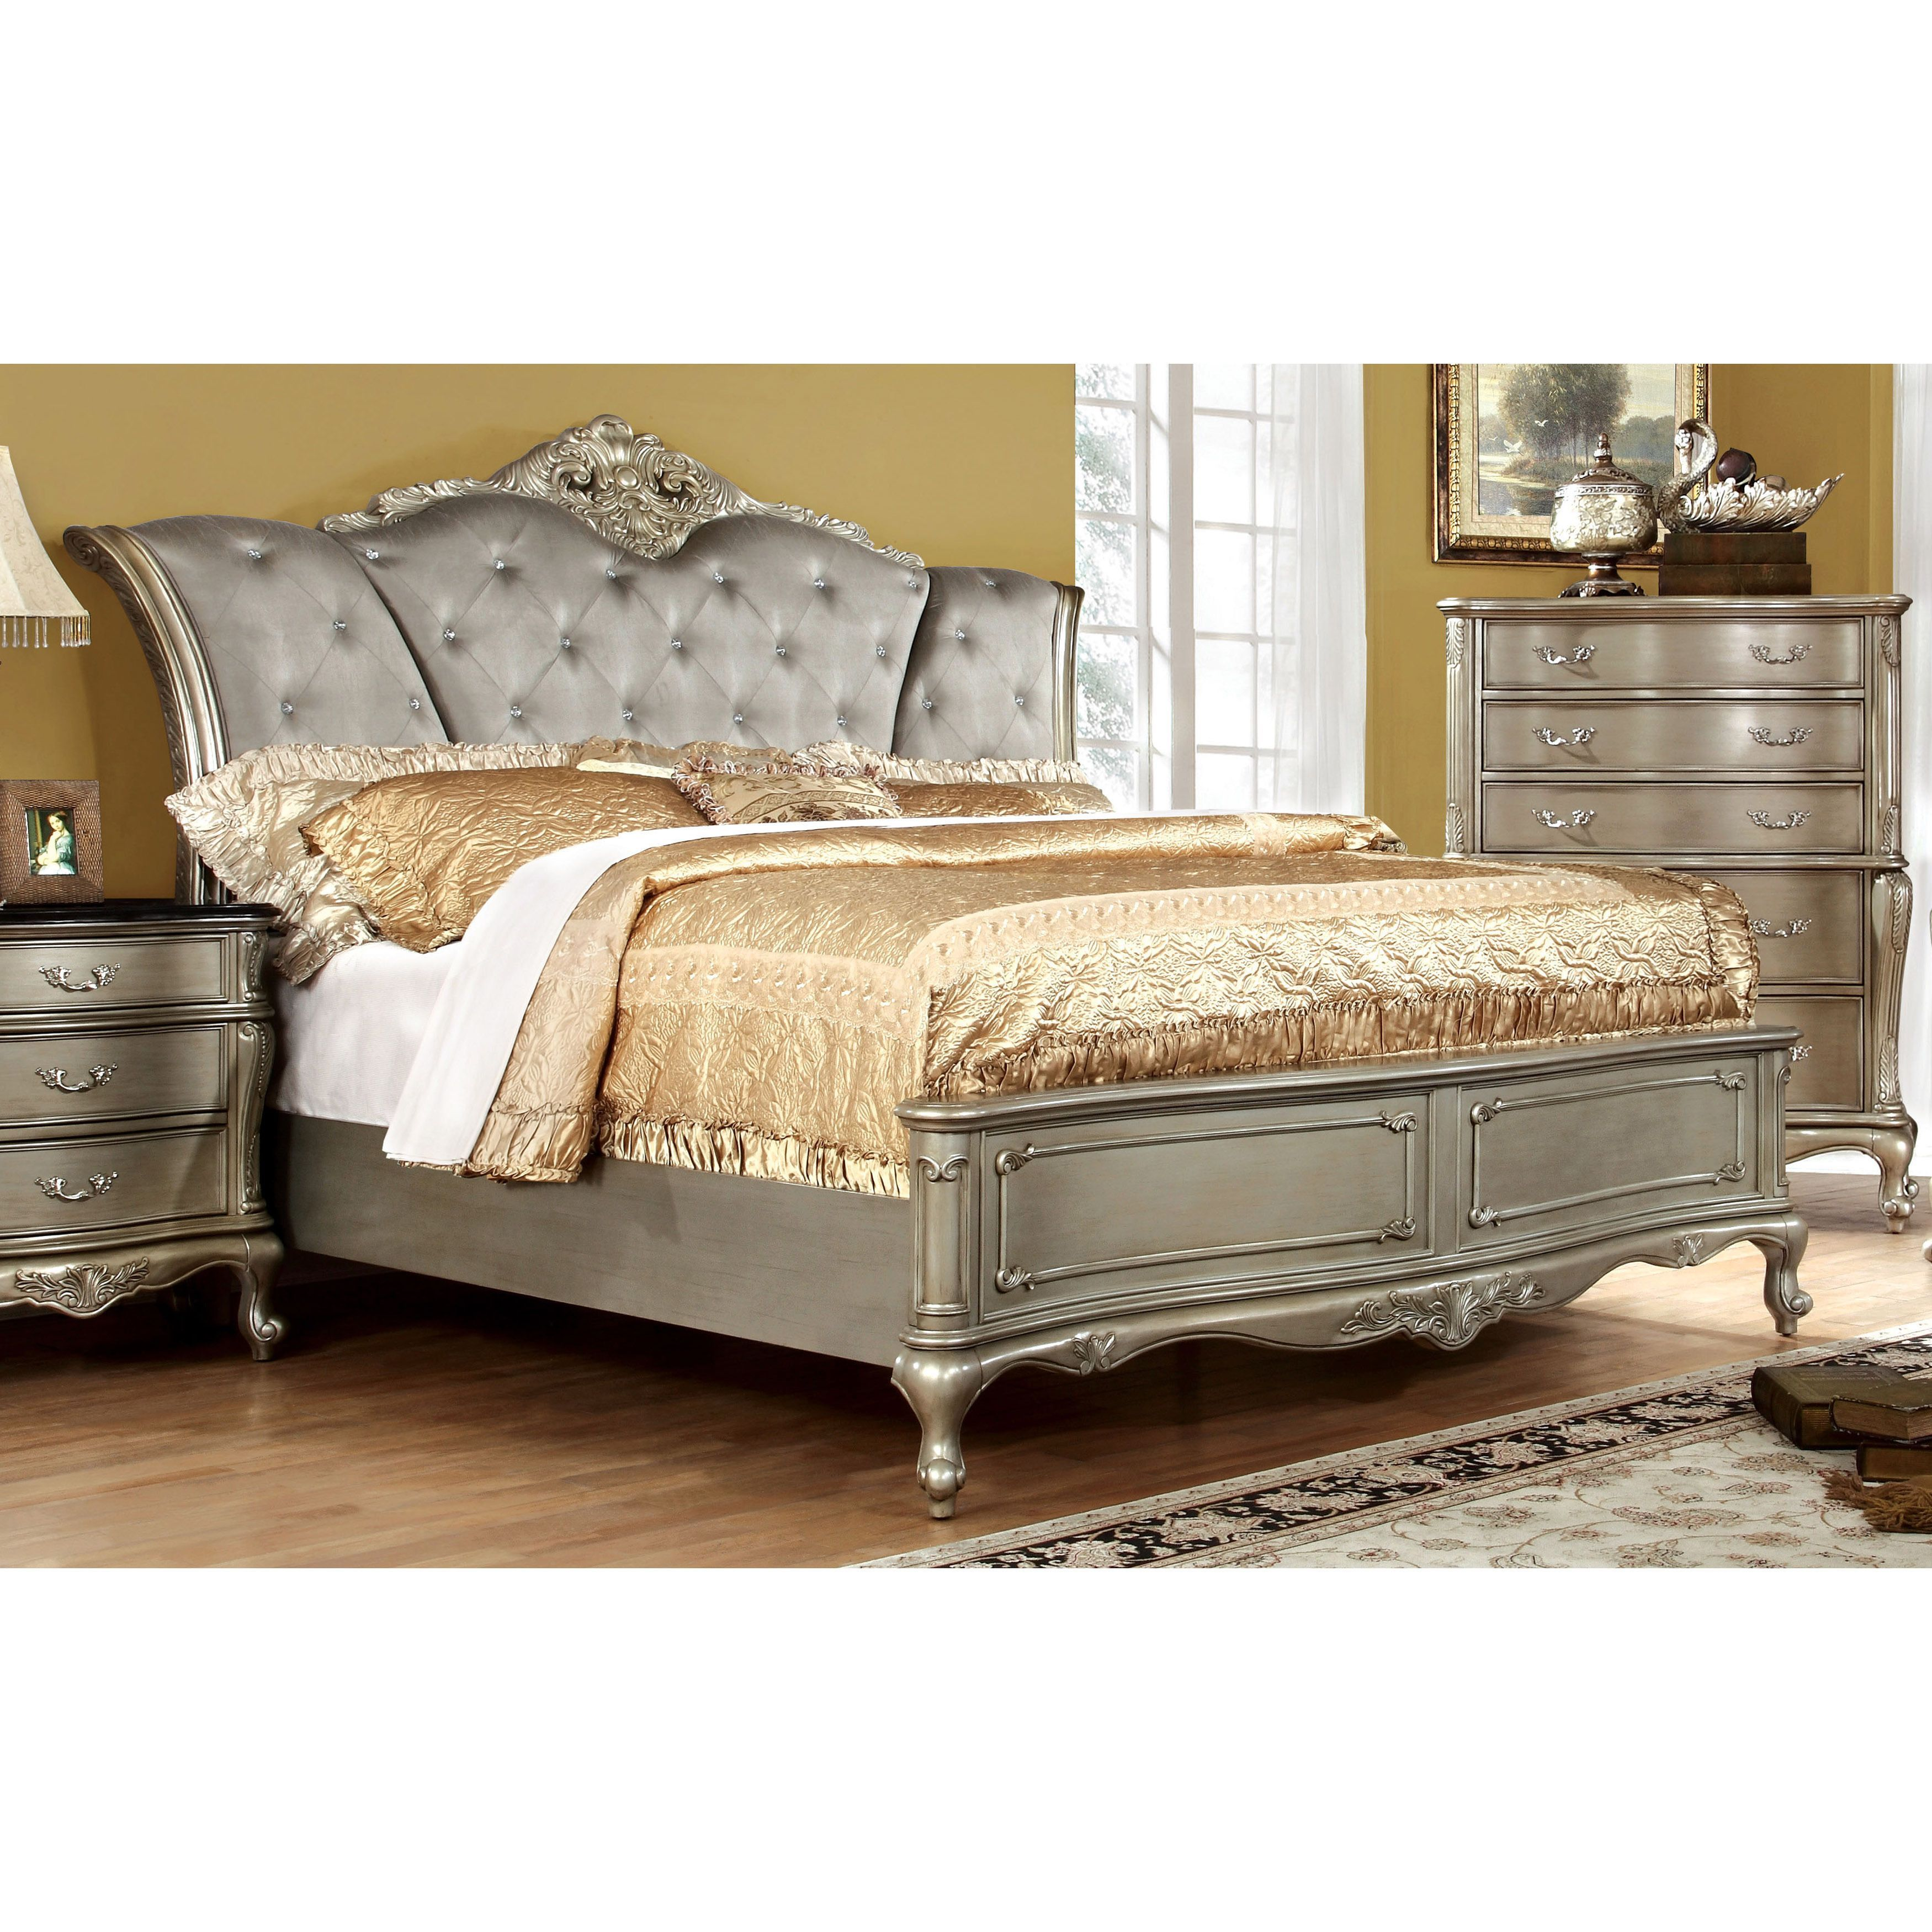 furniture of america therese luxury gold button tufted bed cal